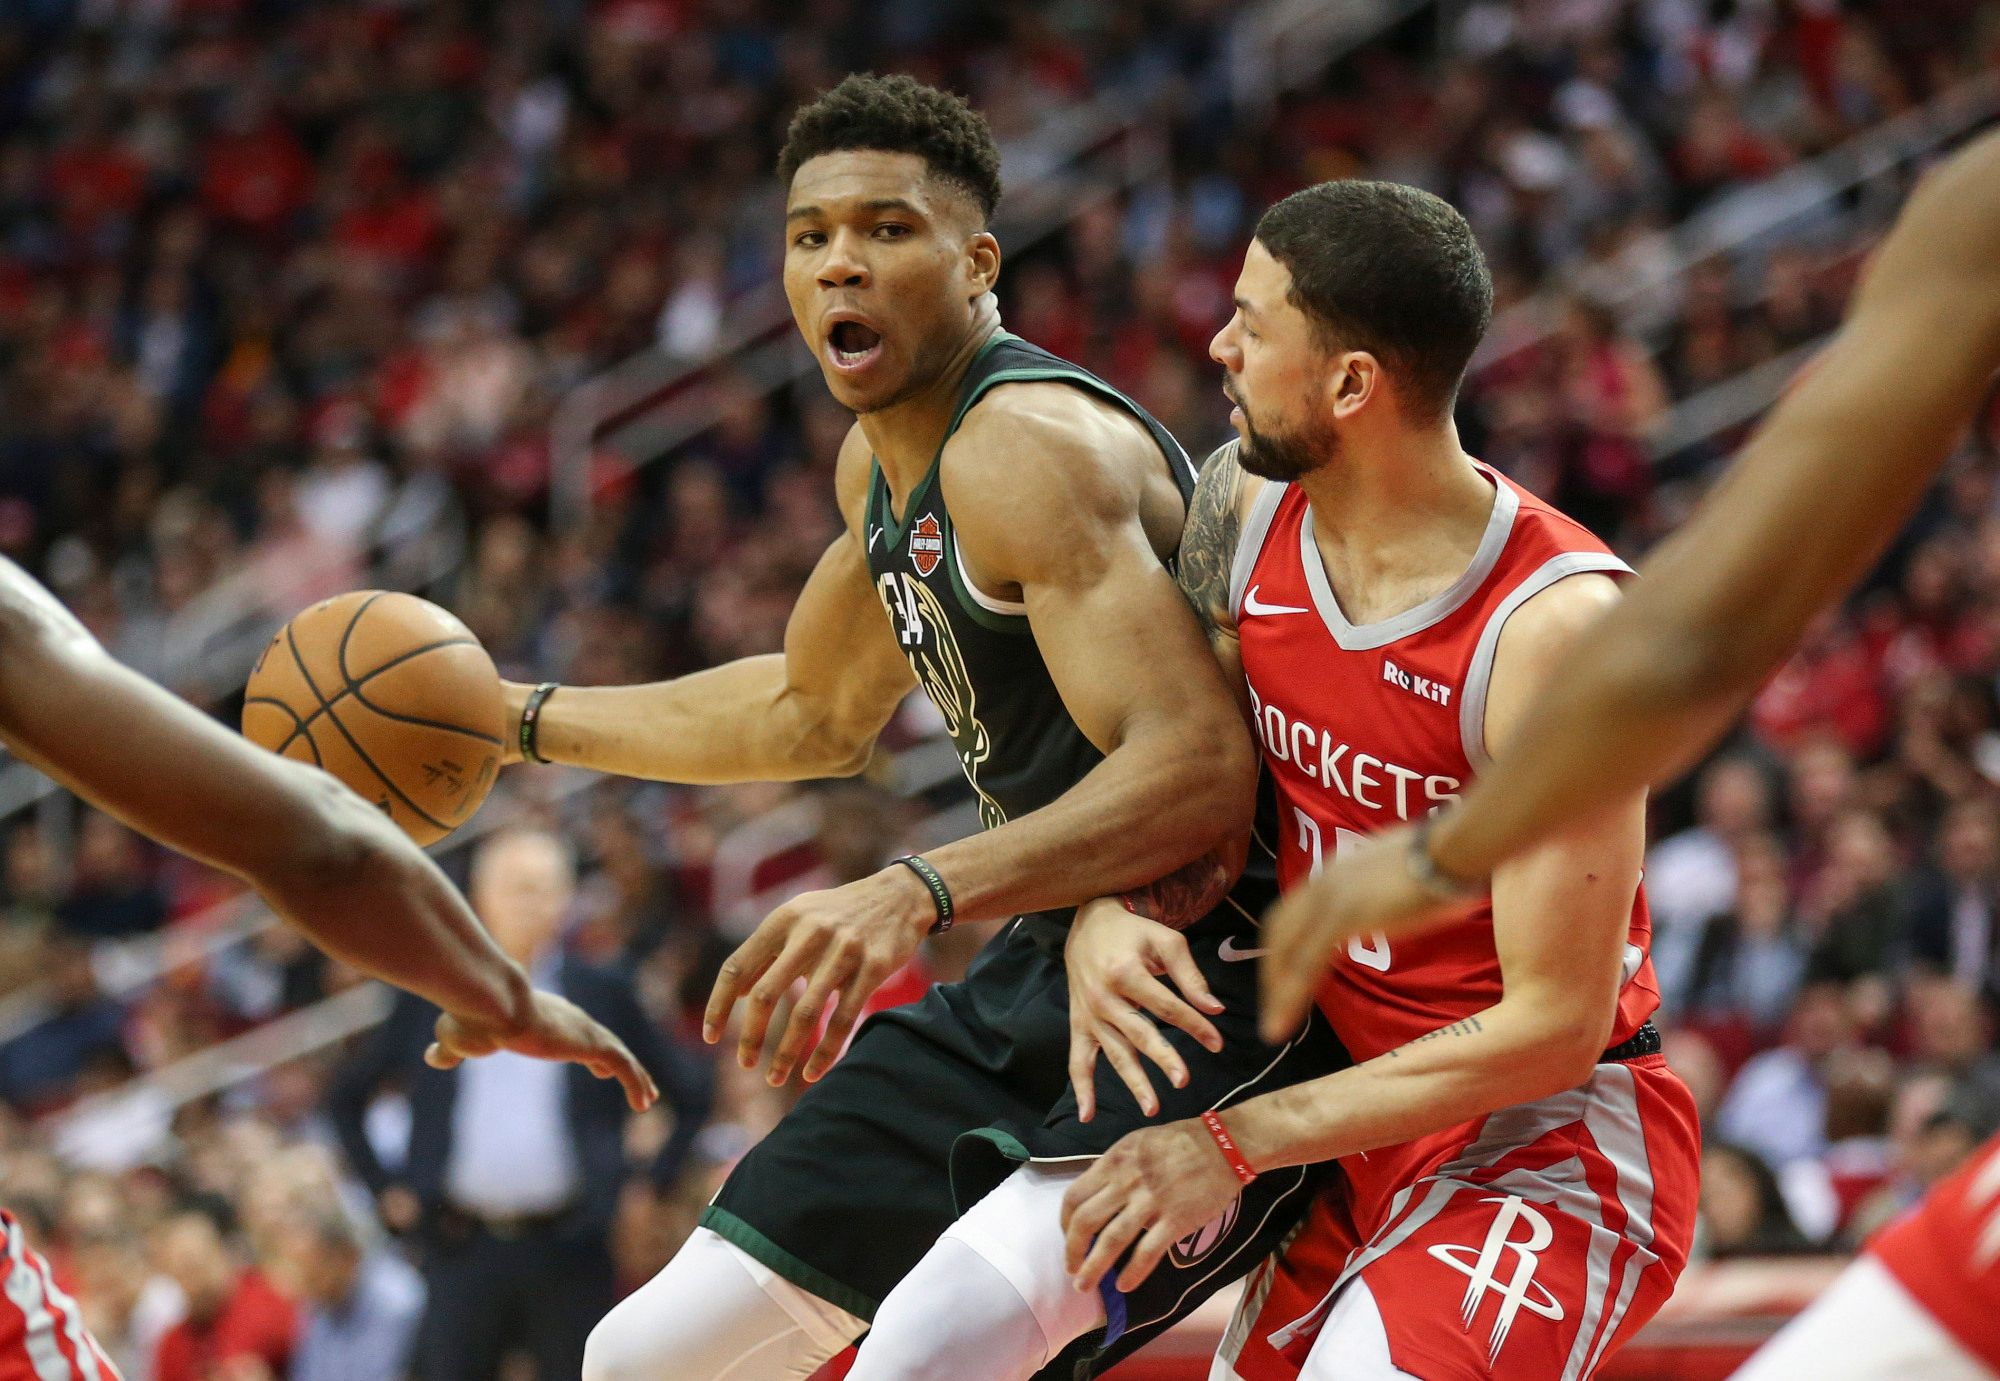 NBA Daily Rundown: Giannis lifts Bucks in Houston, Kuzma explodes for 41, and Wizards draw upset axe on 76ers